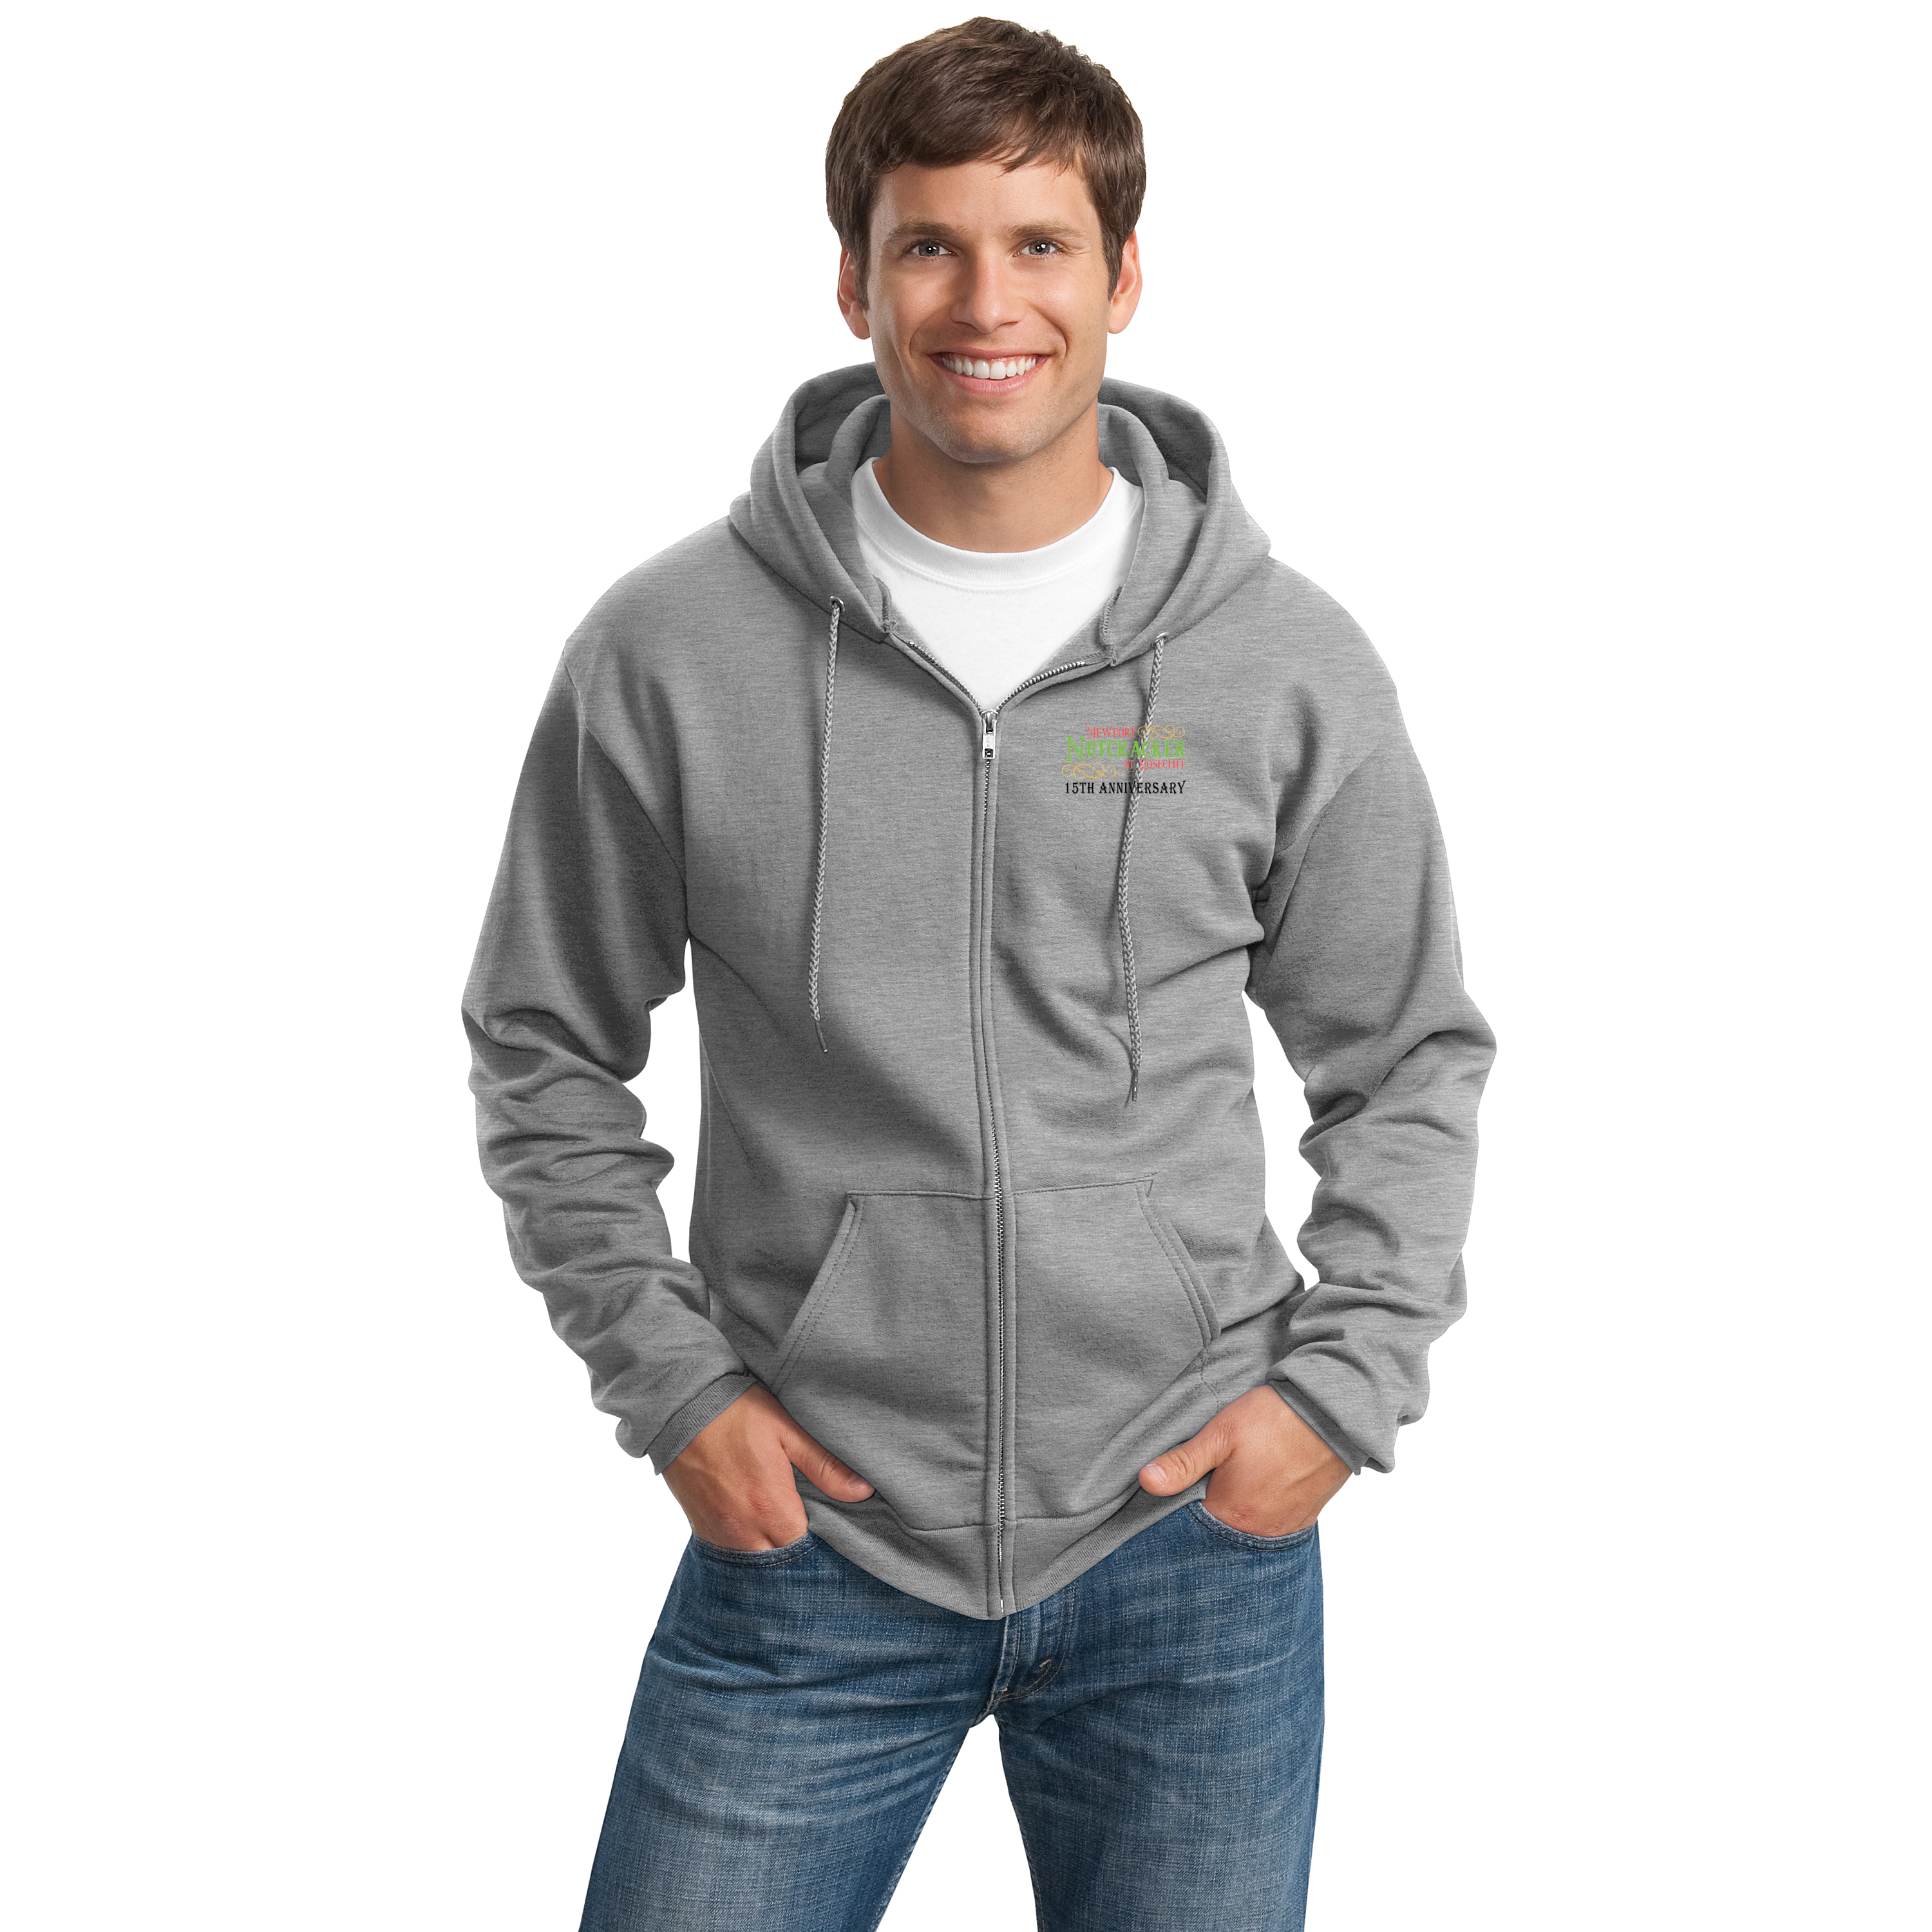 NUTCRACKER - ESSENTIAL FLEECE FULL-ZIP HOODED SWEATSHIRT